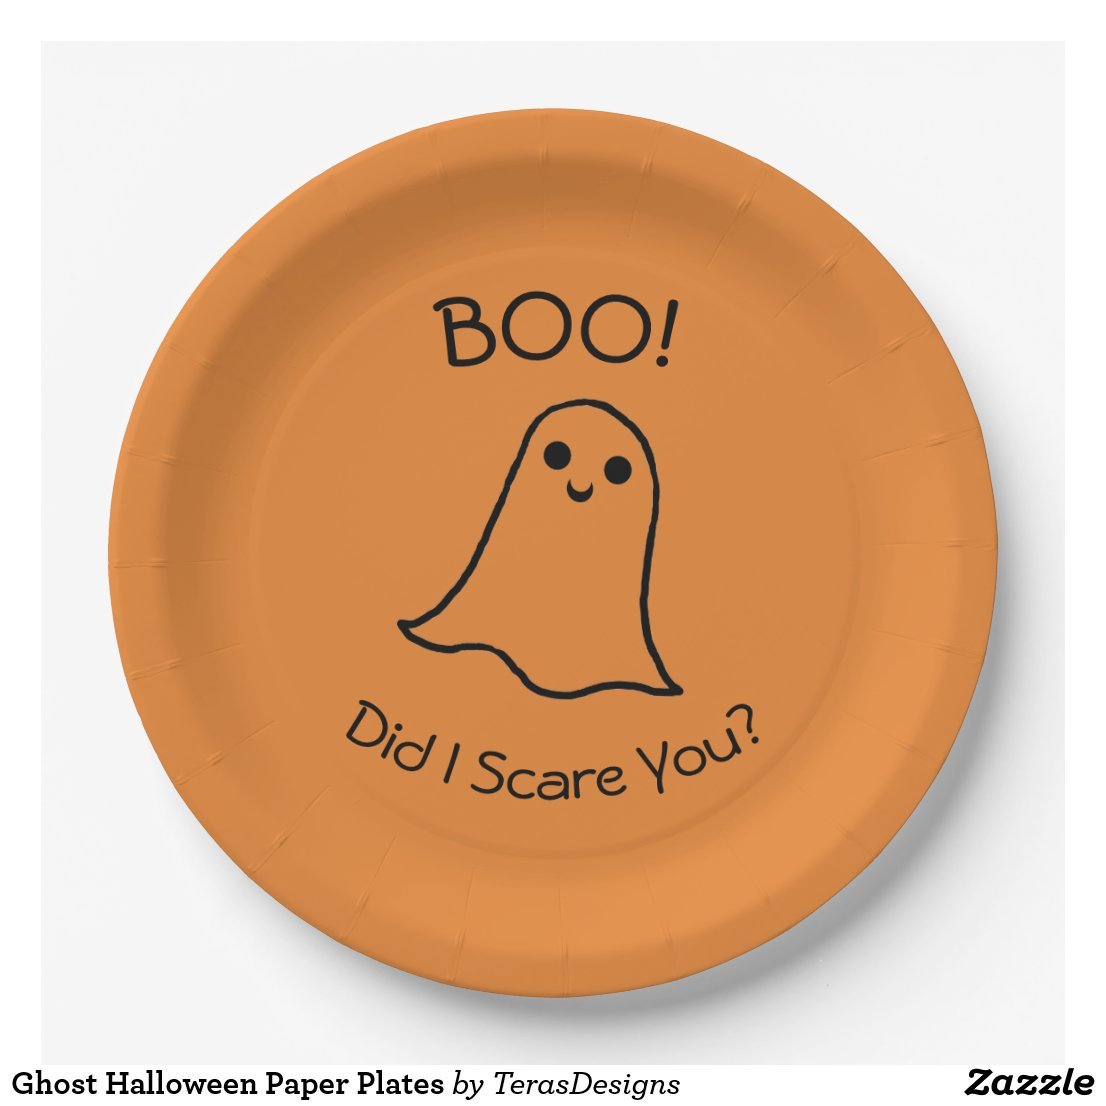 Ghost Halloween Paper Plates